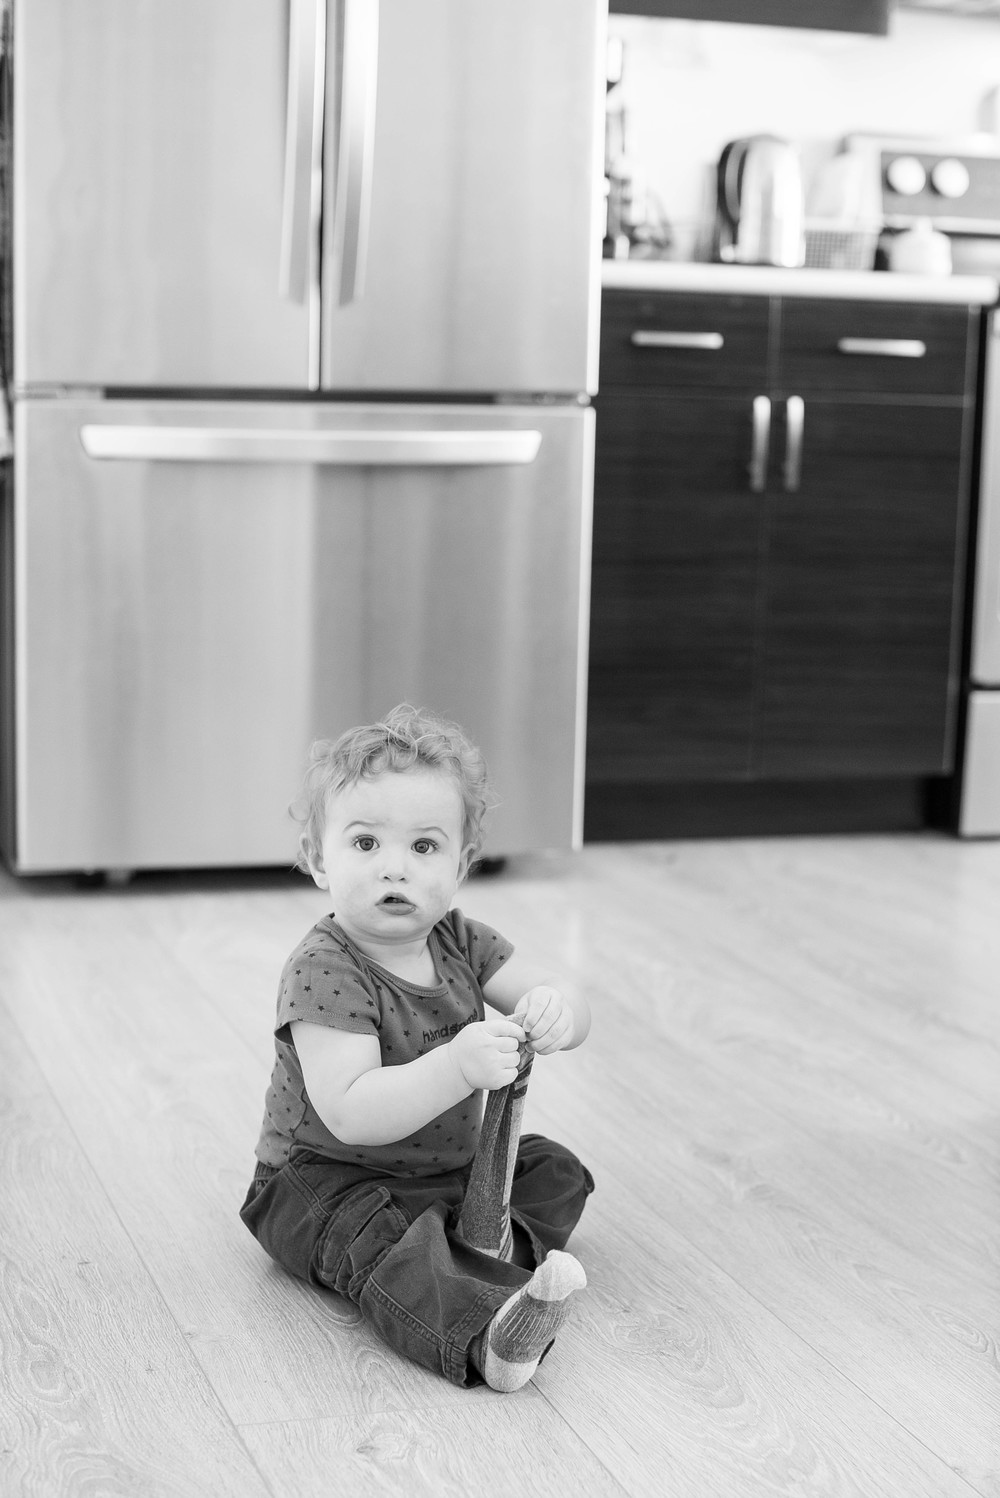 According to Heidi, this is a completely accurate portrayal of how Myles feels about socks... the socks seriously only lasted for like 5 minutes of the photo shoot before he ripped them off his feet!